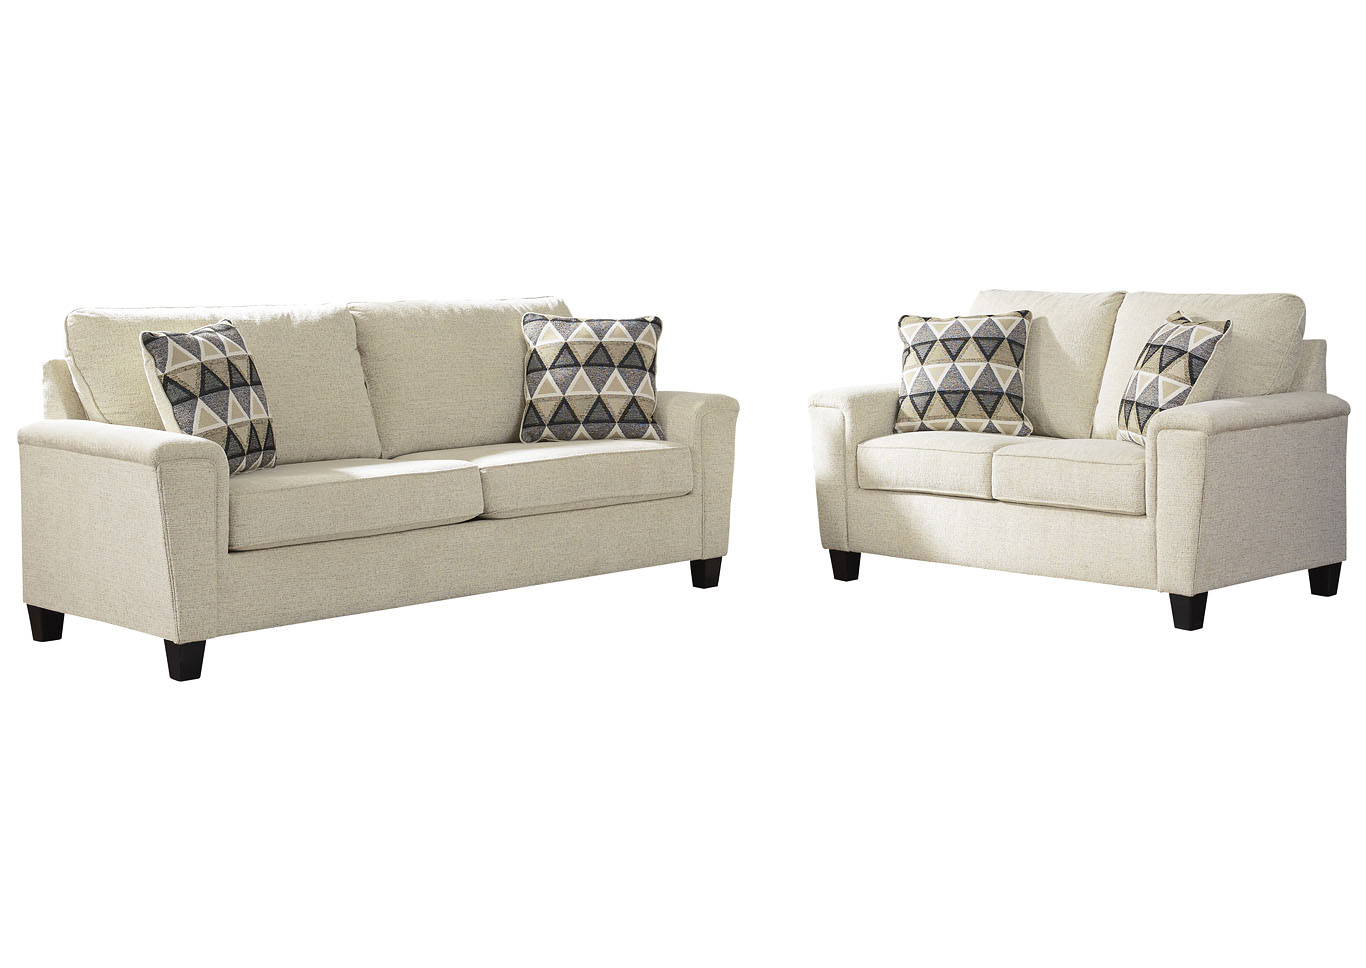 Abinger Natural Sofa and Loveseat,Signature Design By Ashley